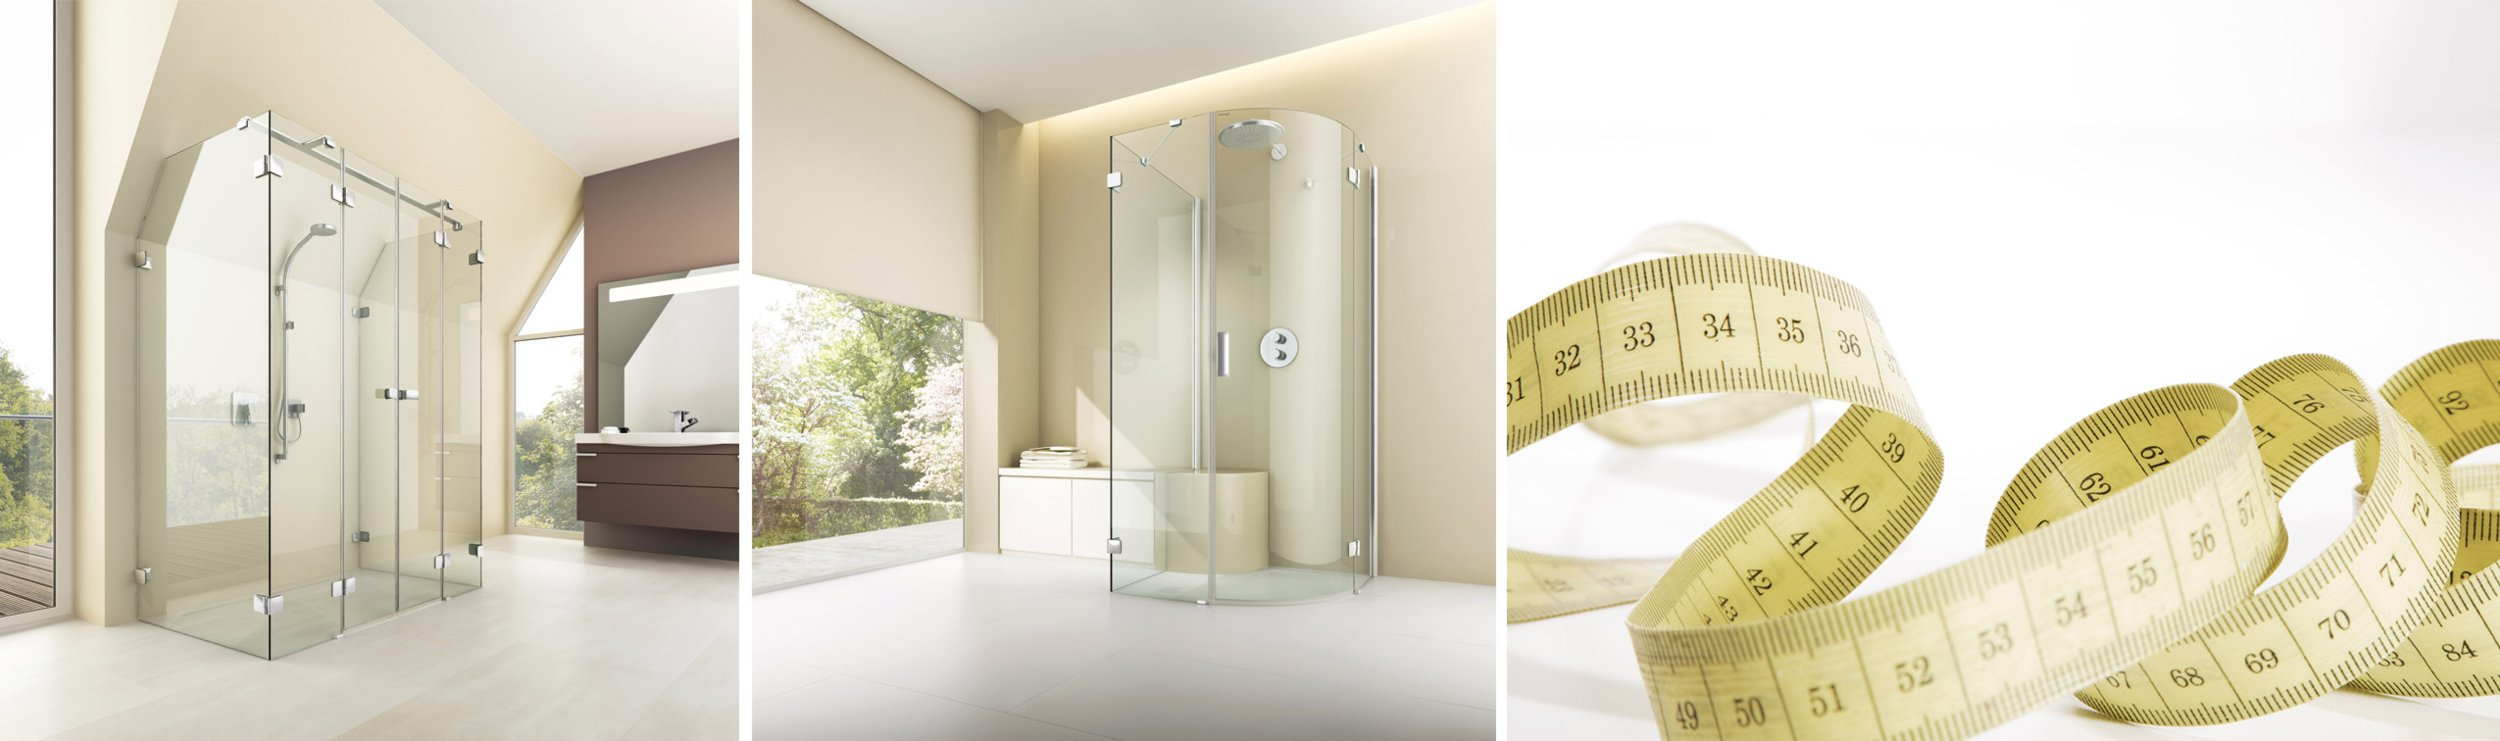 Custom constructions for showers